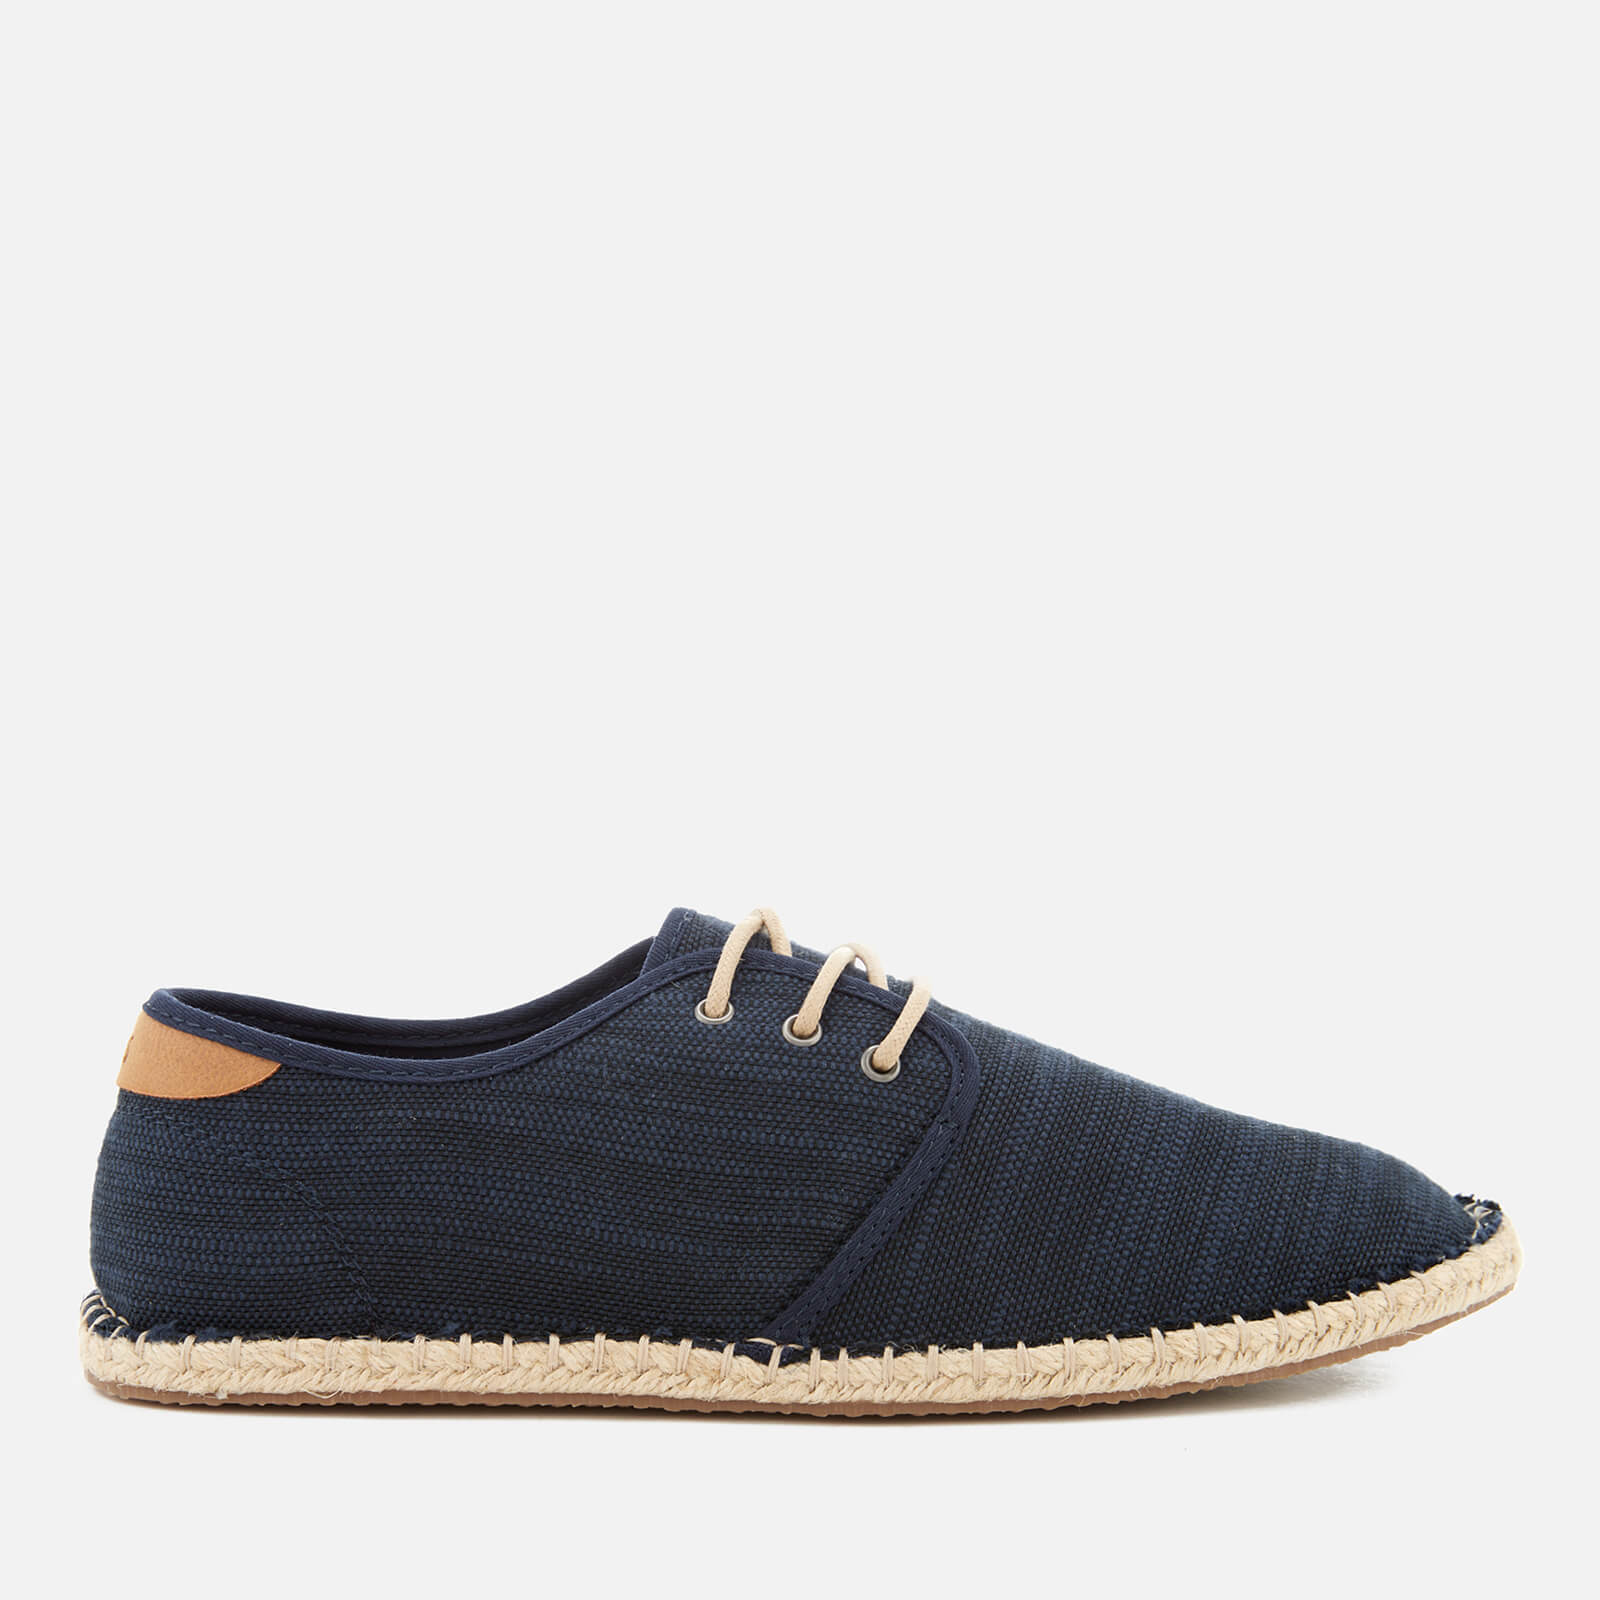 a59b63ecfae7f TOMS Men's Diego Canvas Lace Up Espadrilles - Navy | FREE UK Delivery |  Allsole